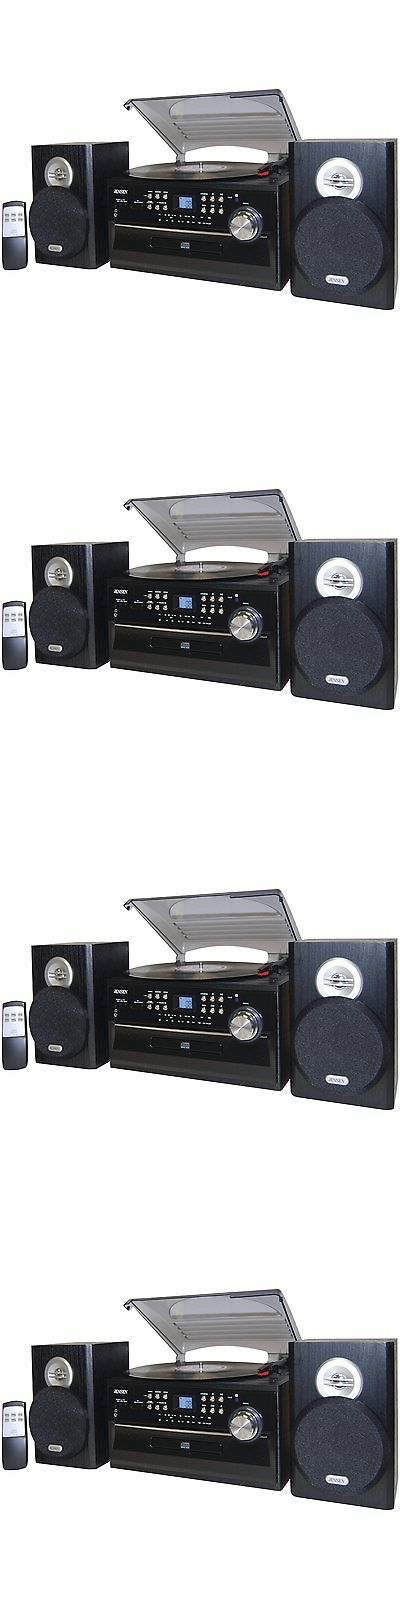 Record Players Home Turntables: Jensen Record Player Turntable With Speakers 3 Speed Cd Cassette Stereo System -> BUY IT NOW ONLY: $119.9 on eBay!